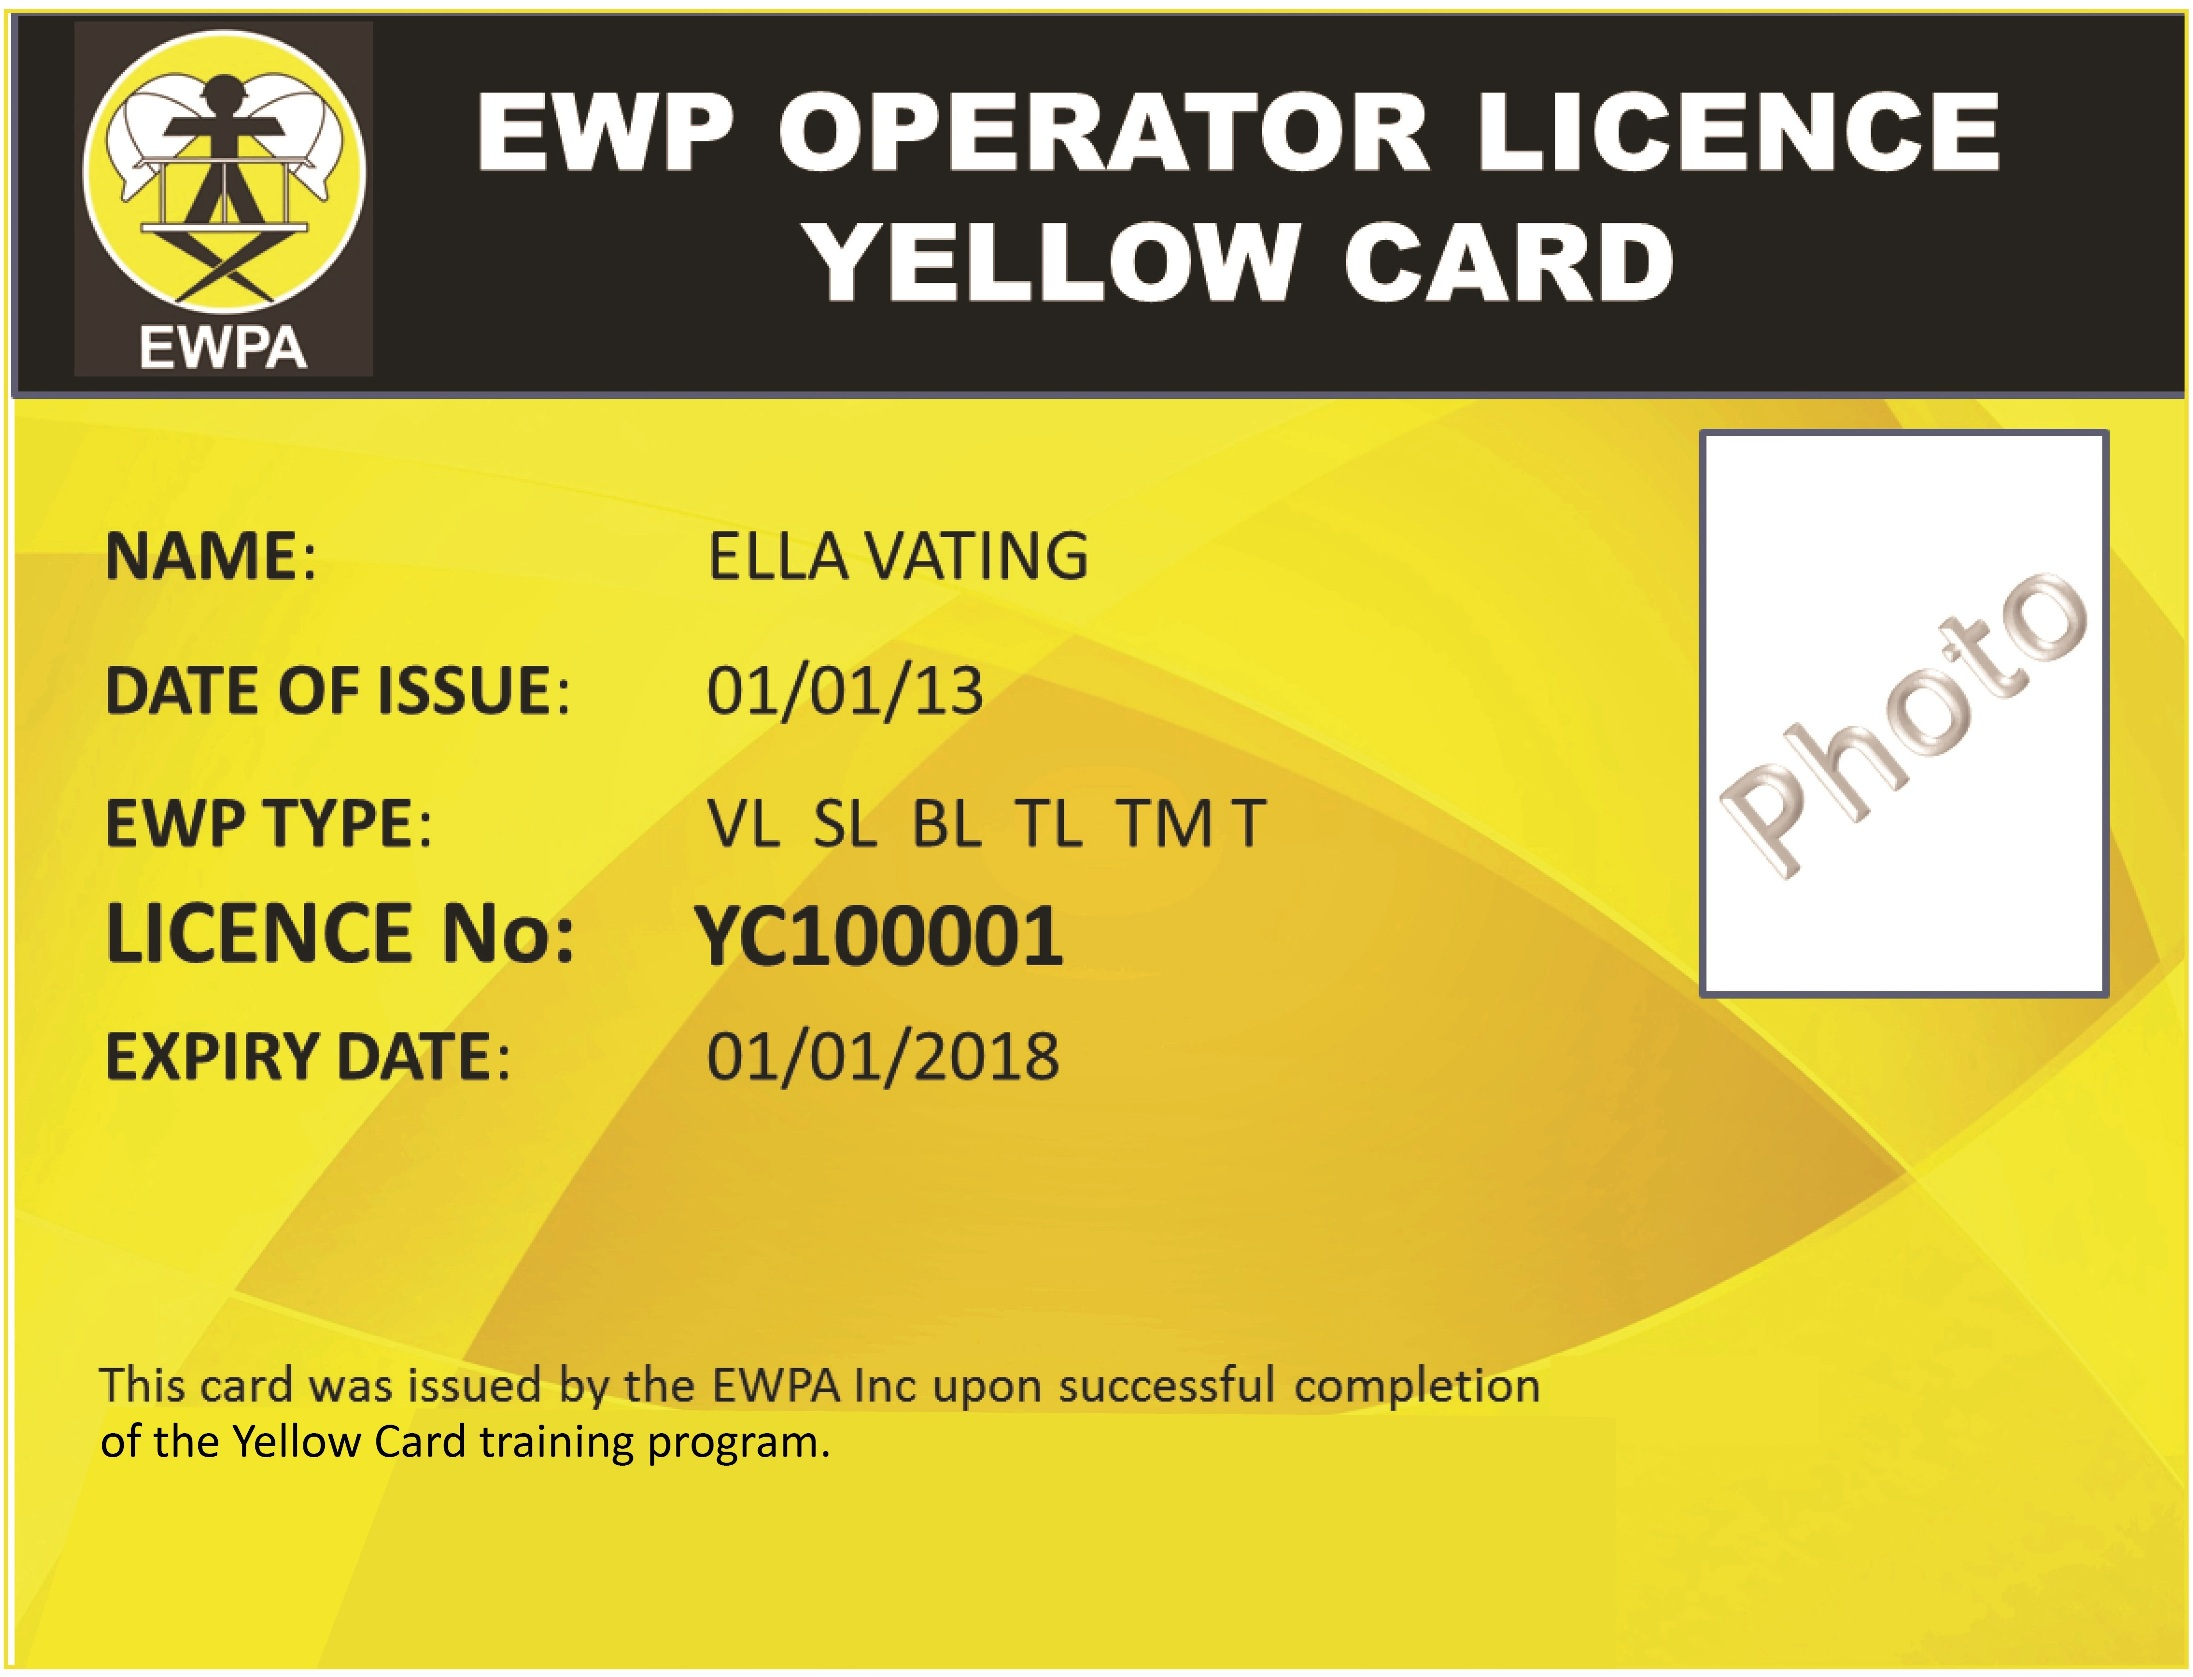 Validating a Yellow Card trained Operator